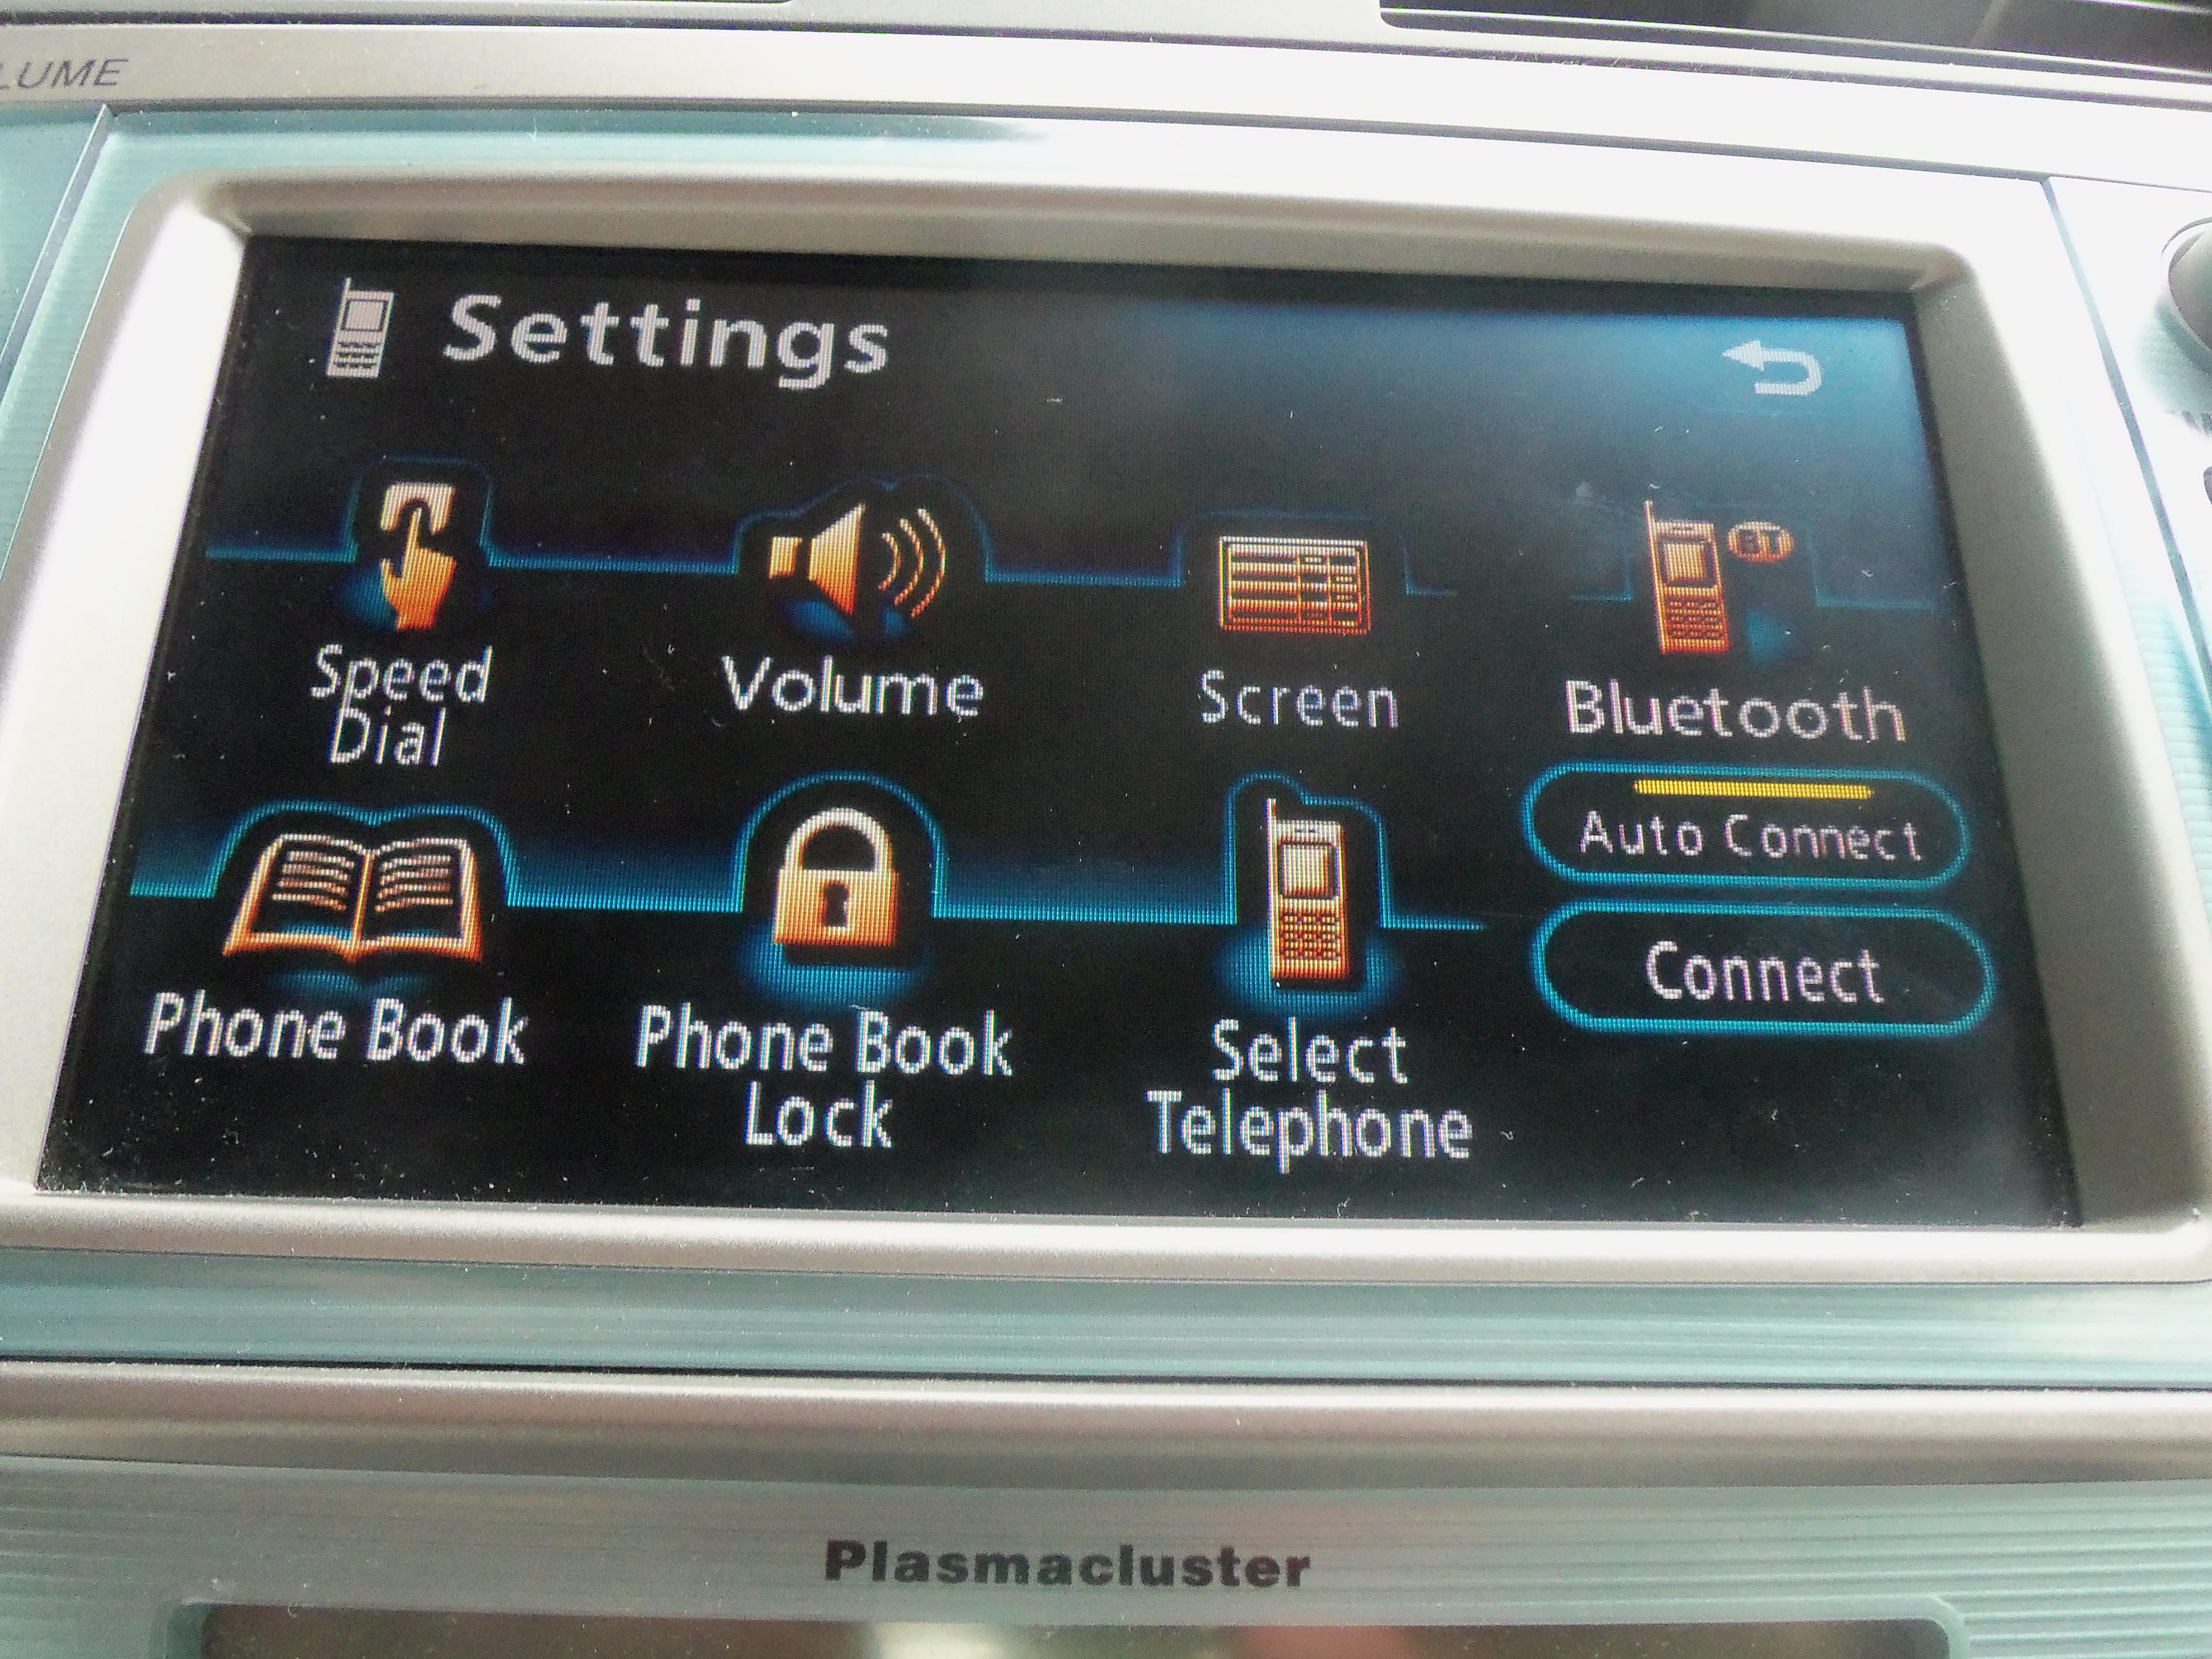 Toyota Camry Bluetooth Cell Phone Settings